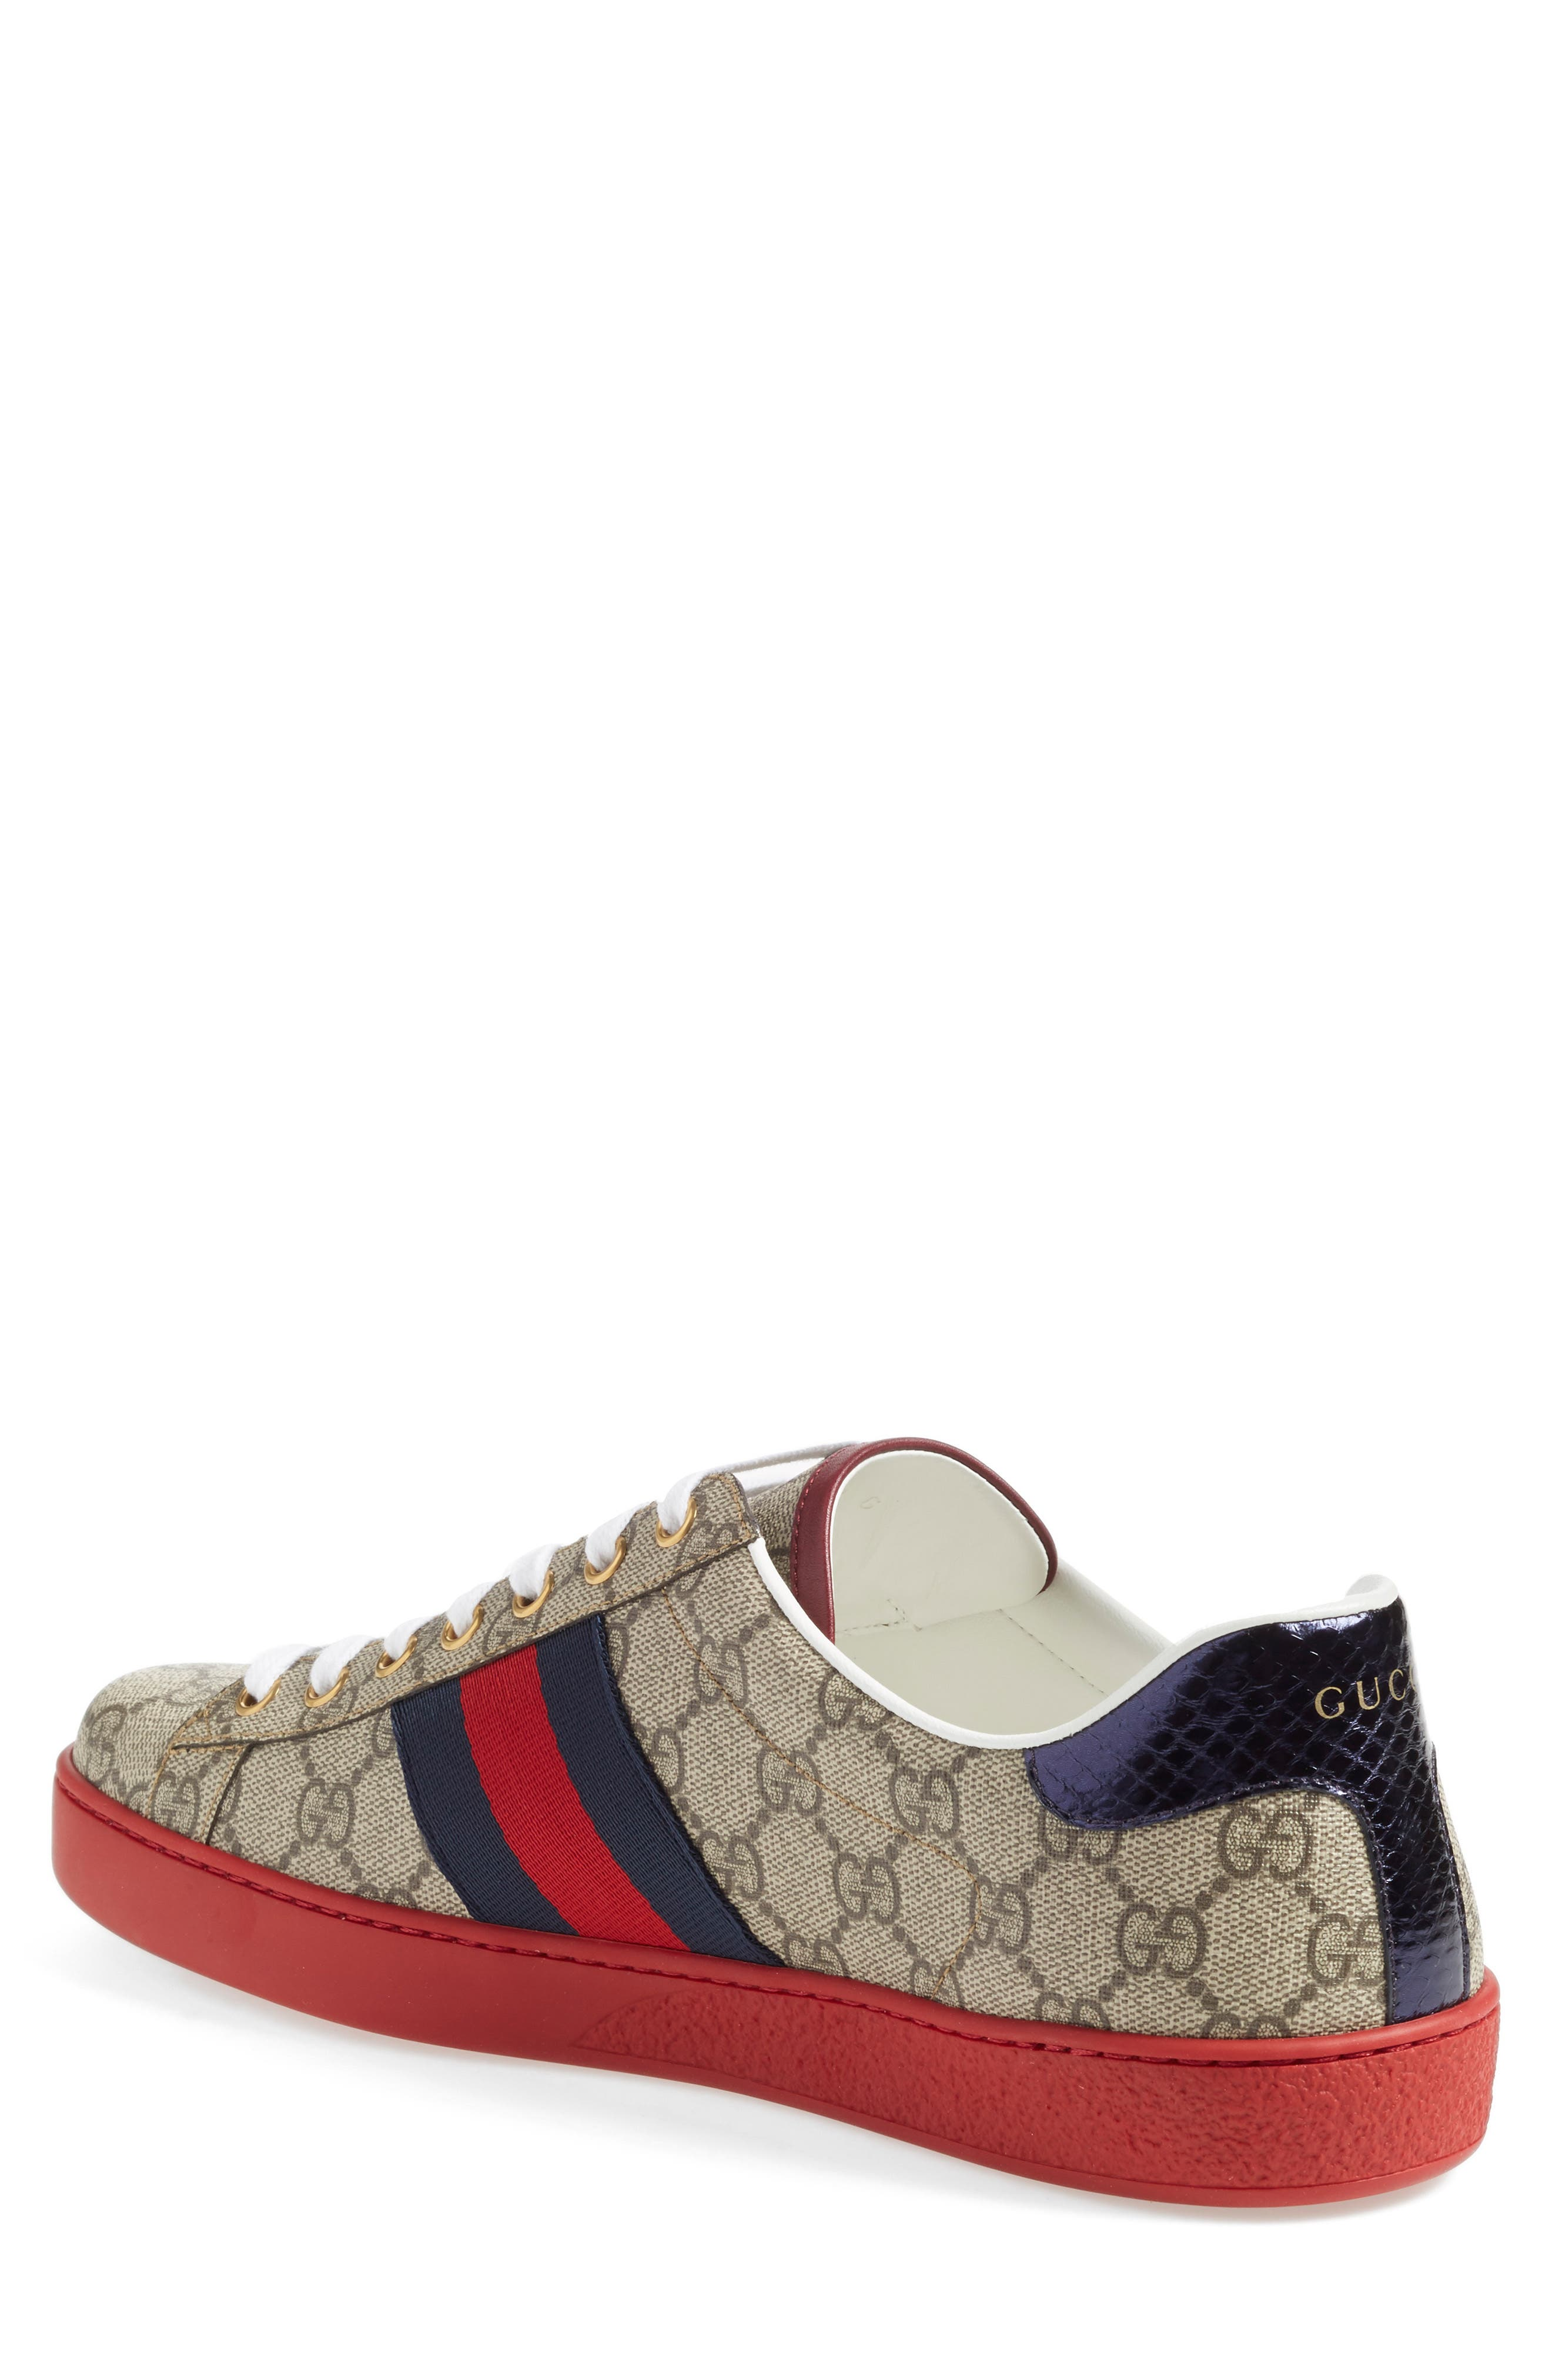 GUCCI, New Ace Webbed Low Top Sneaker, Alternate thumbnail 2, color, BEIGE